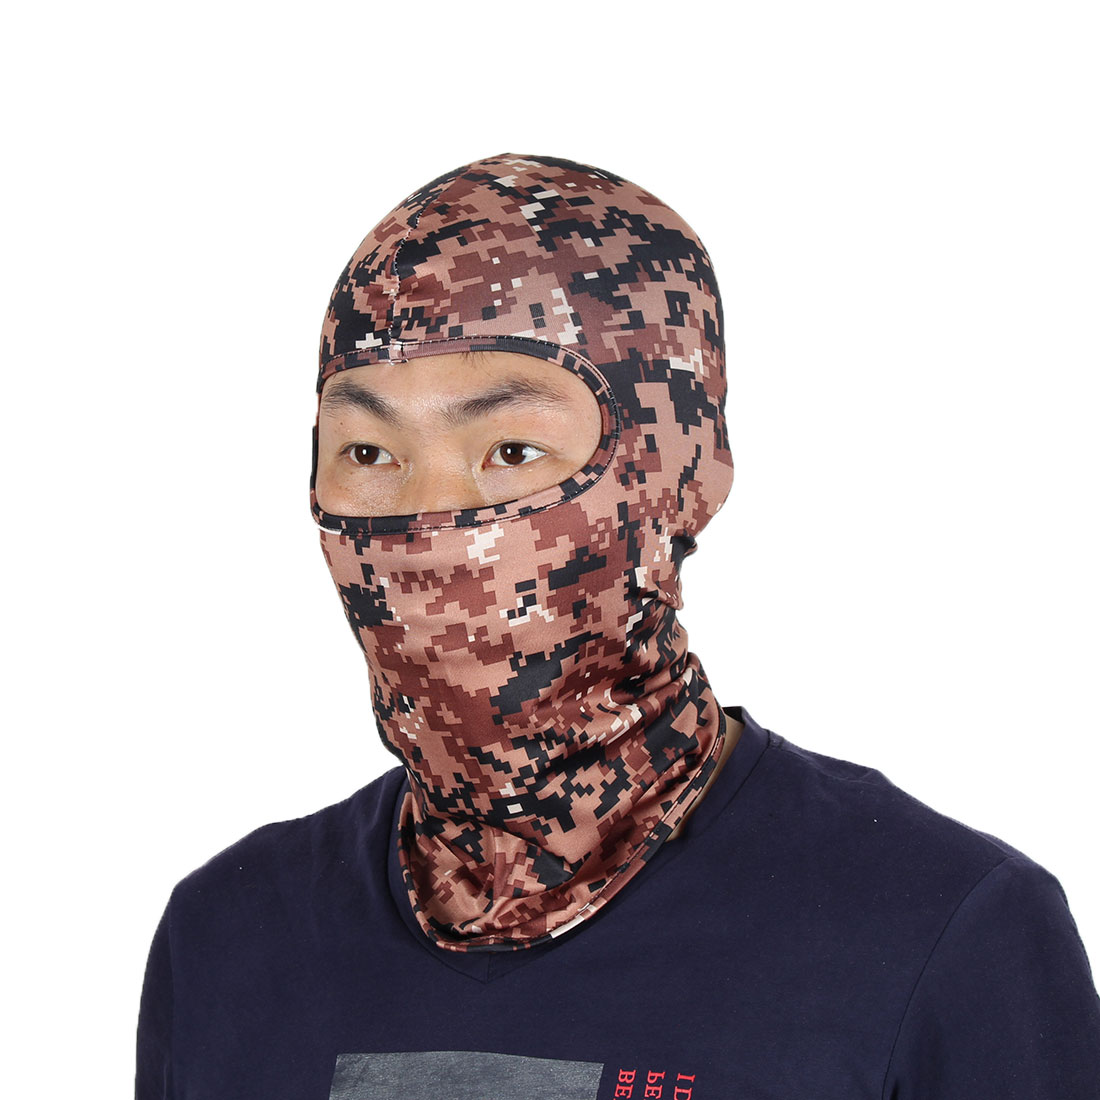 Face Mask Outdoor Sports Cycling Gel Padded Neck Protector Hood Helmet Balaclava by Unique-Bargains